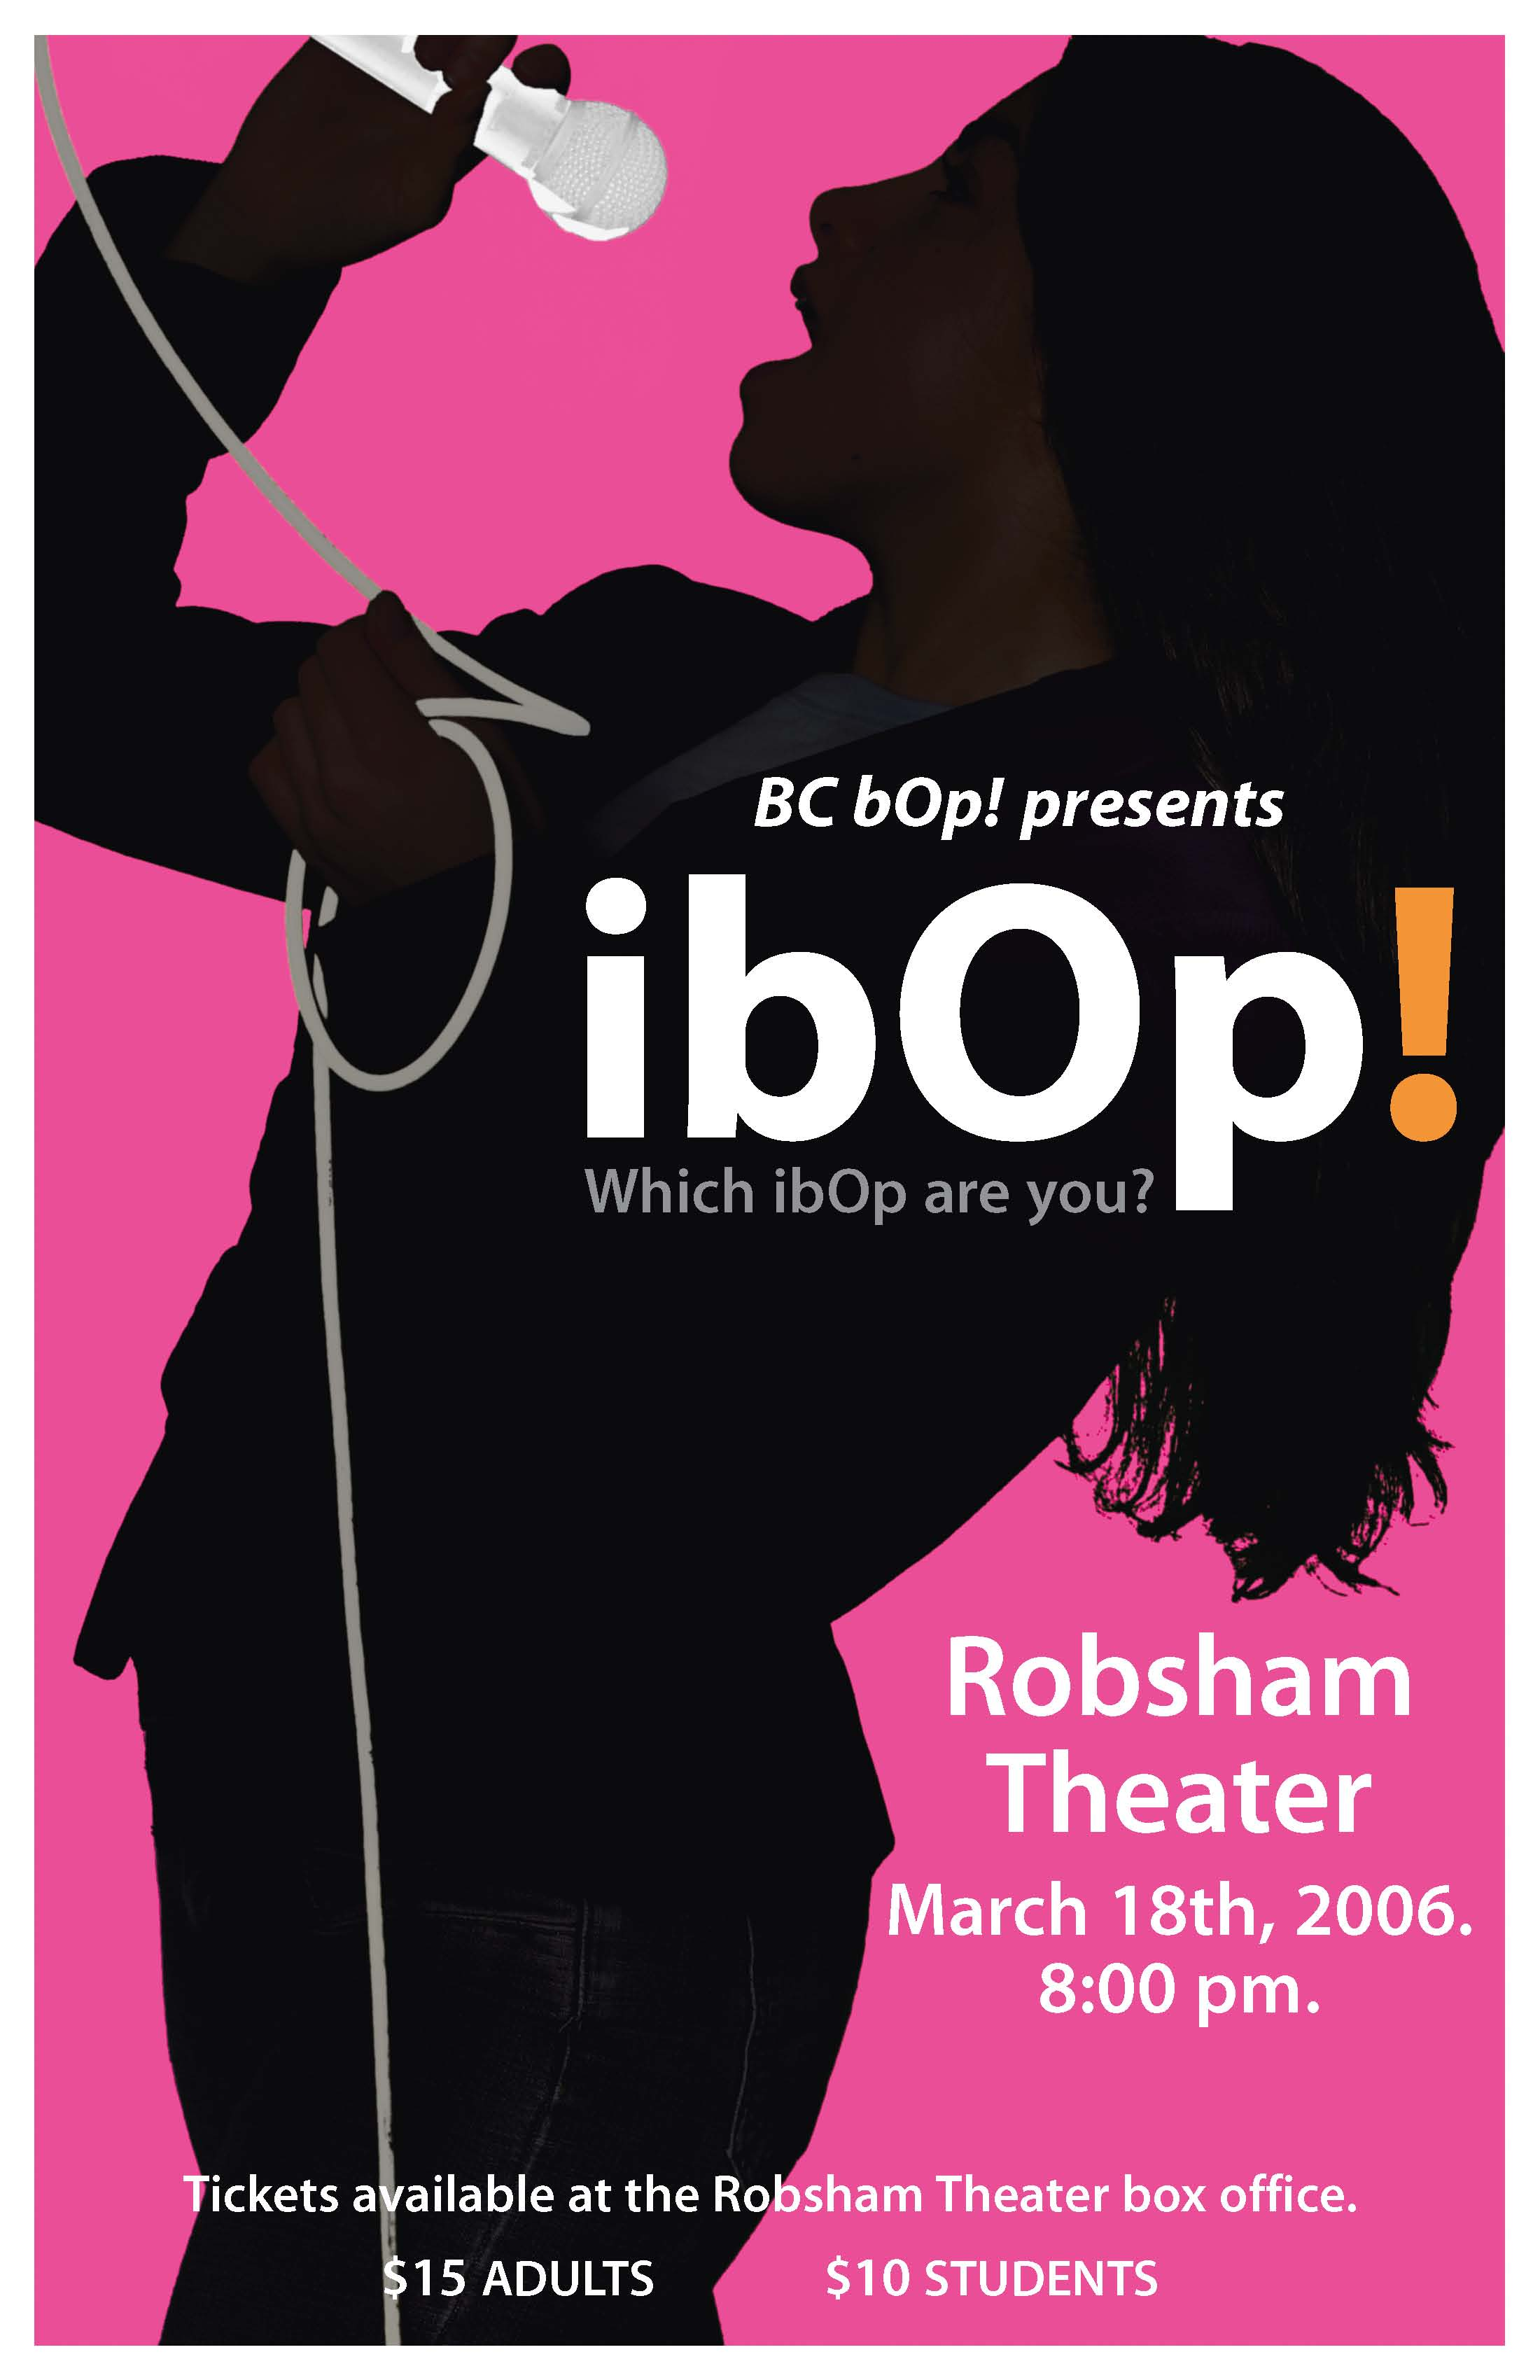 Promotional Poster: BC bOp presents: ibOp!